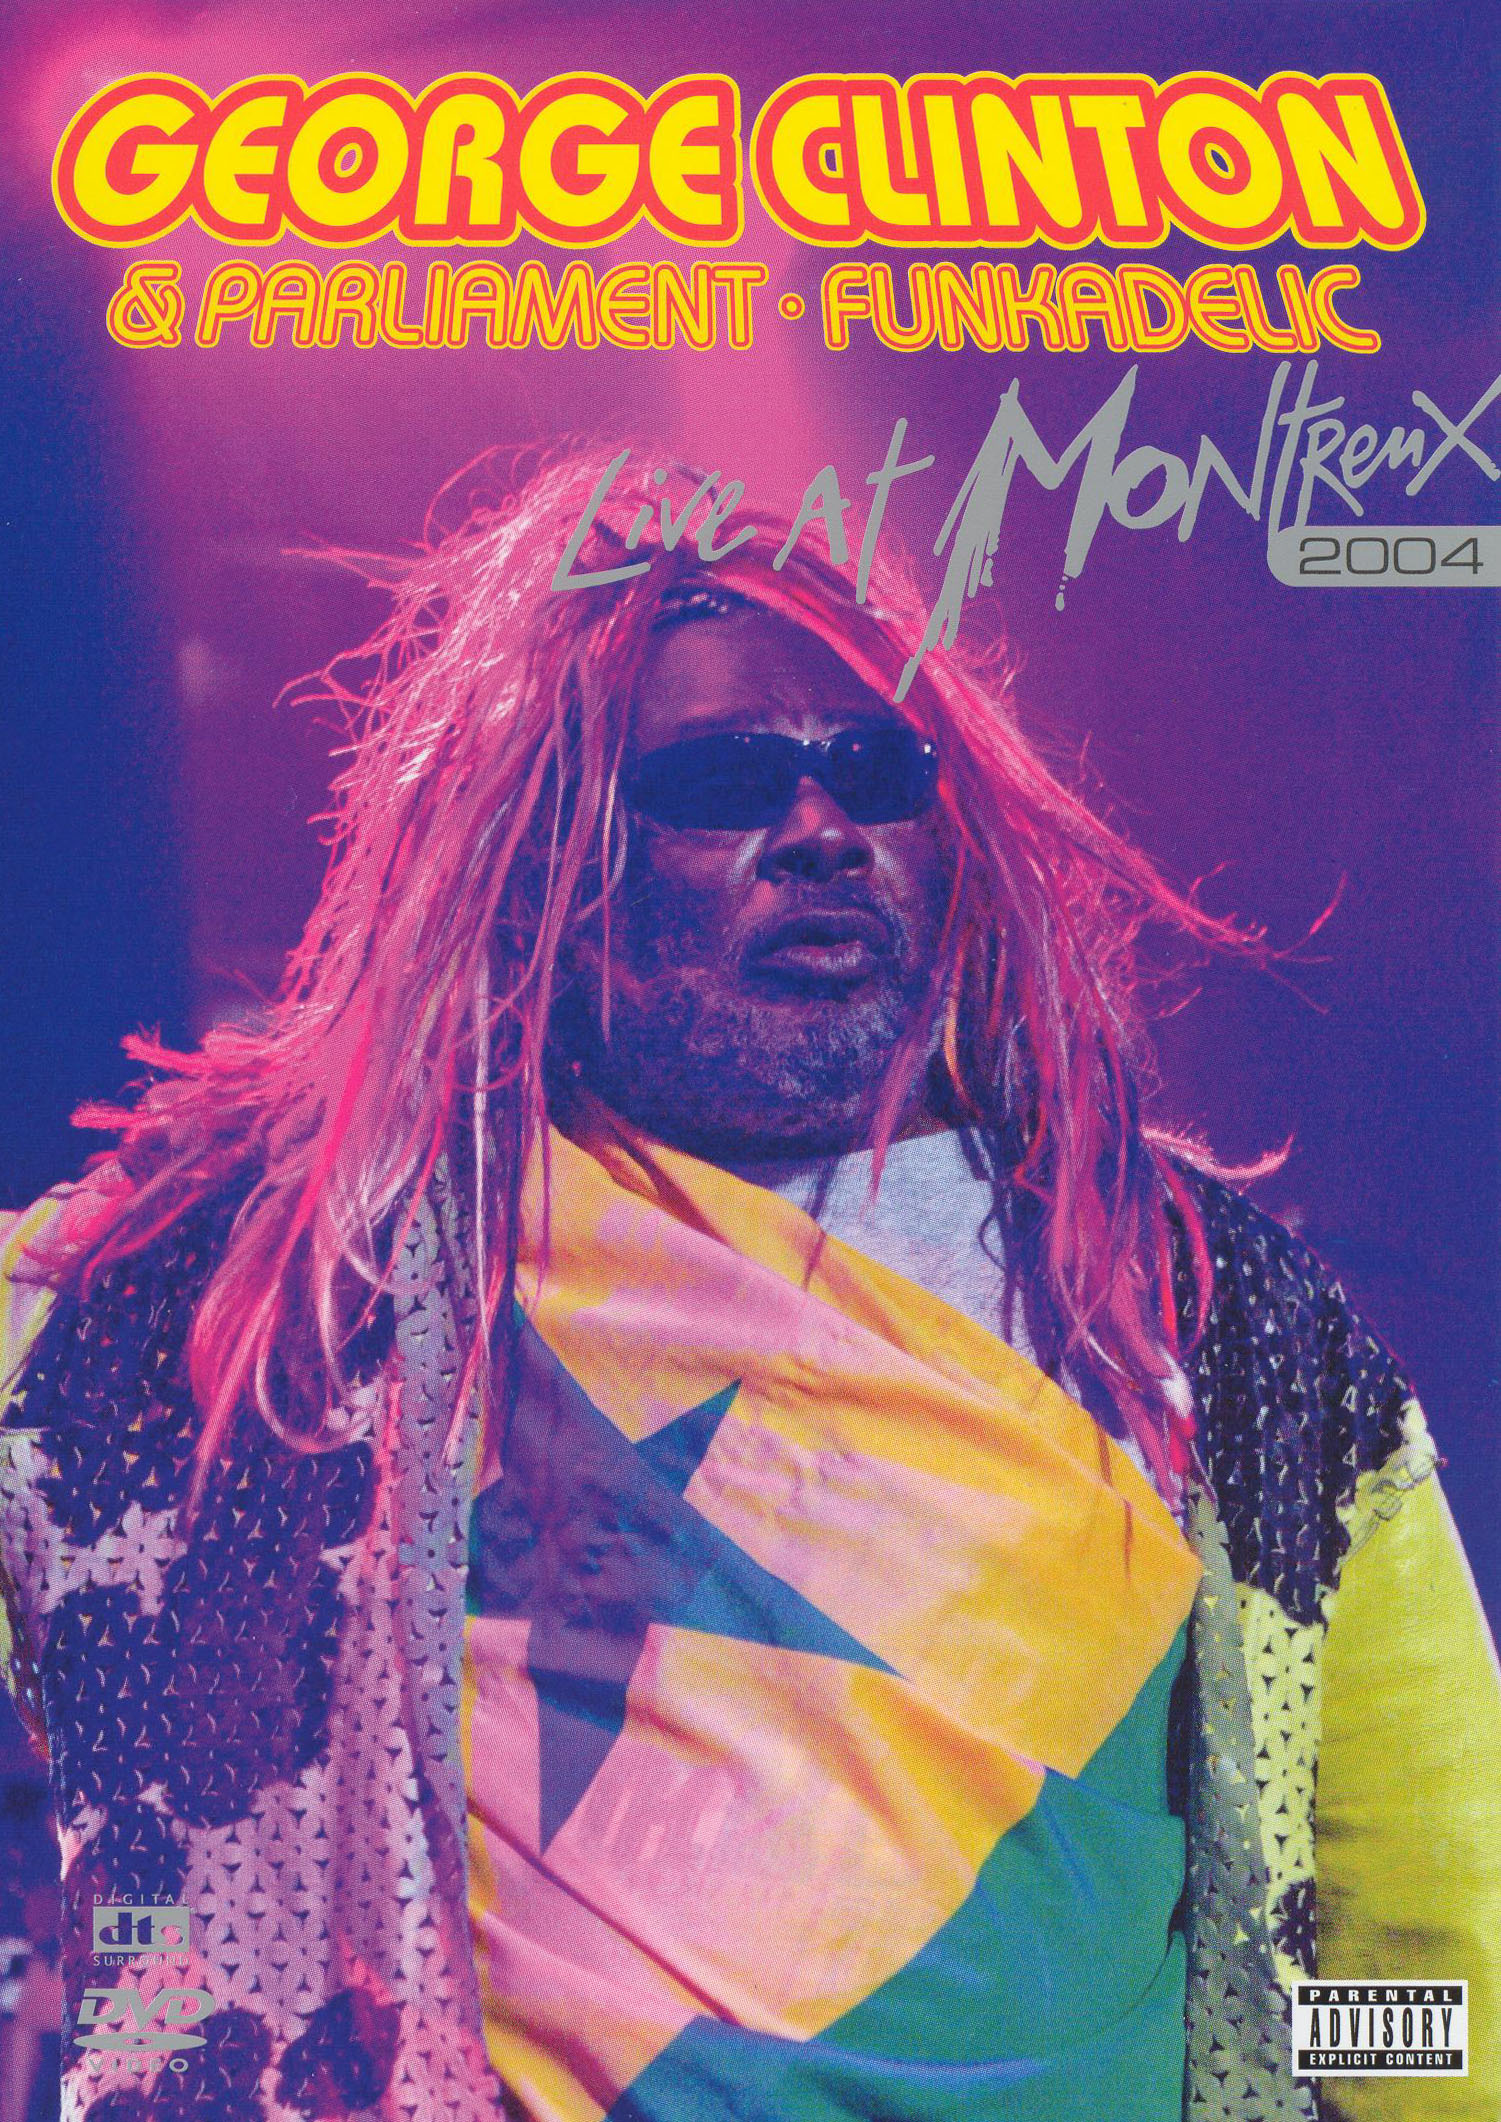 George Clinton and Parliament Funkadelic: Live at Montreux, 2004